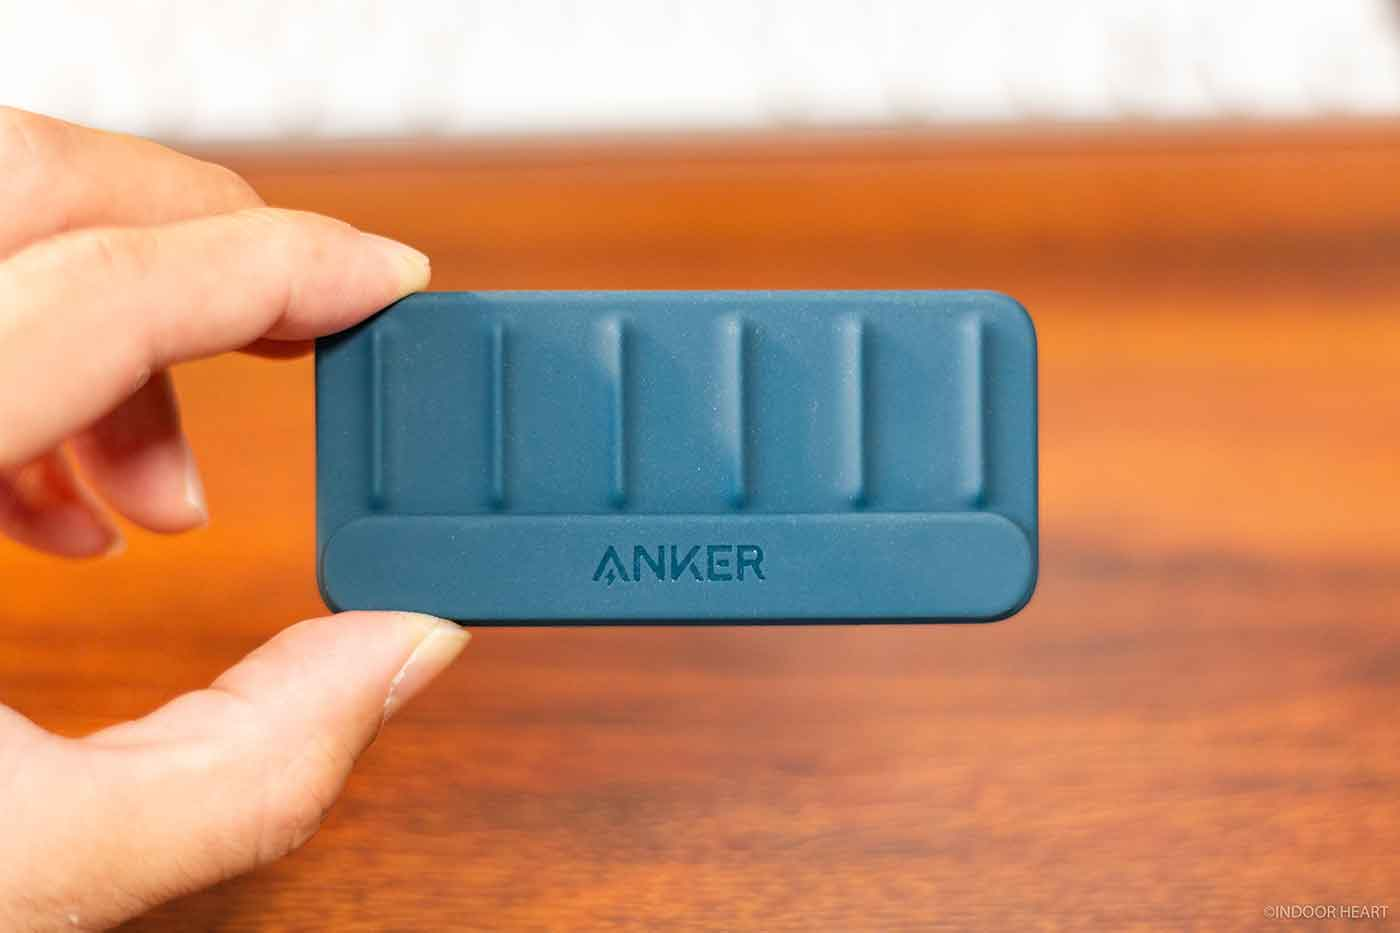 Anker Magnetic Cable Holderの大きさ